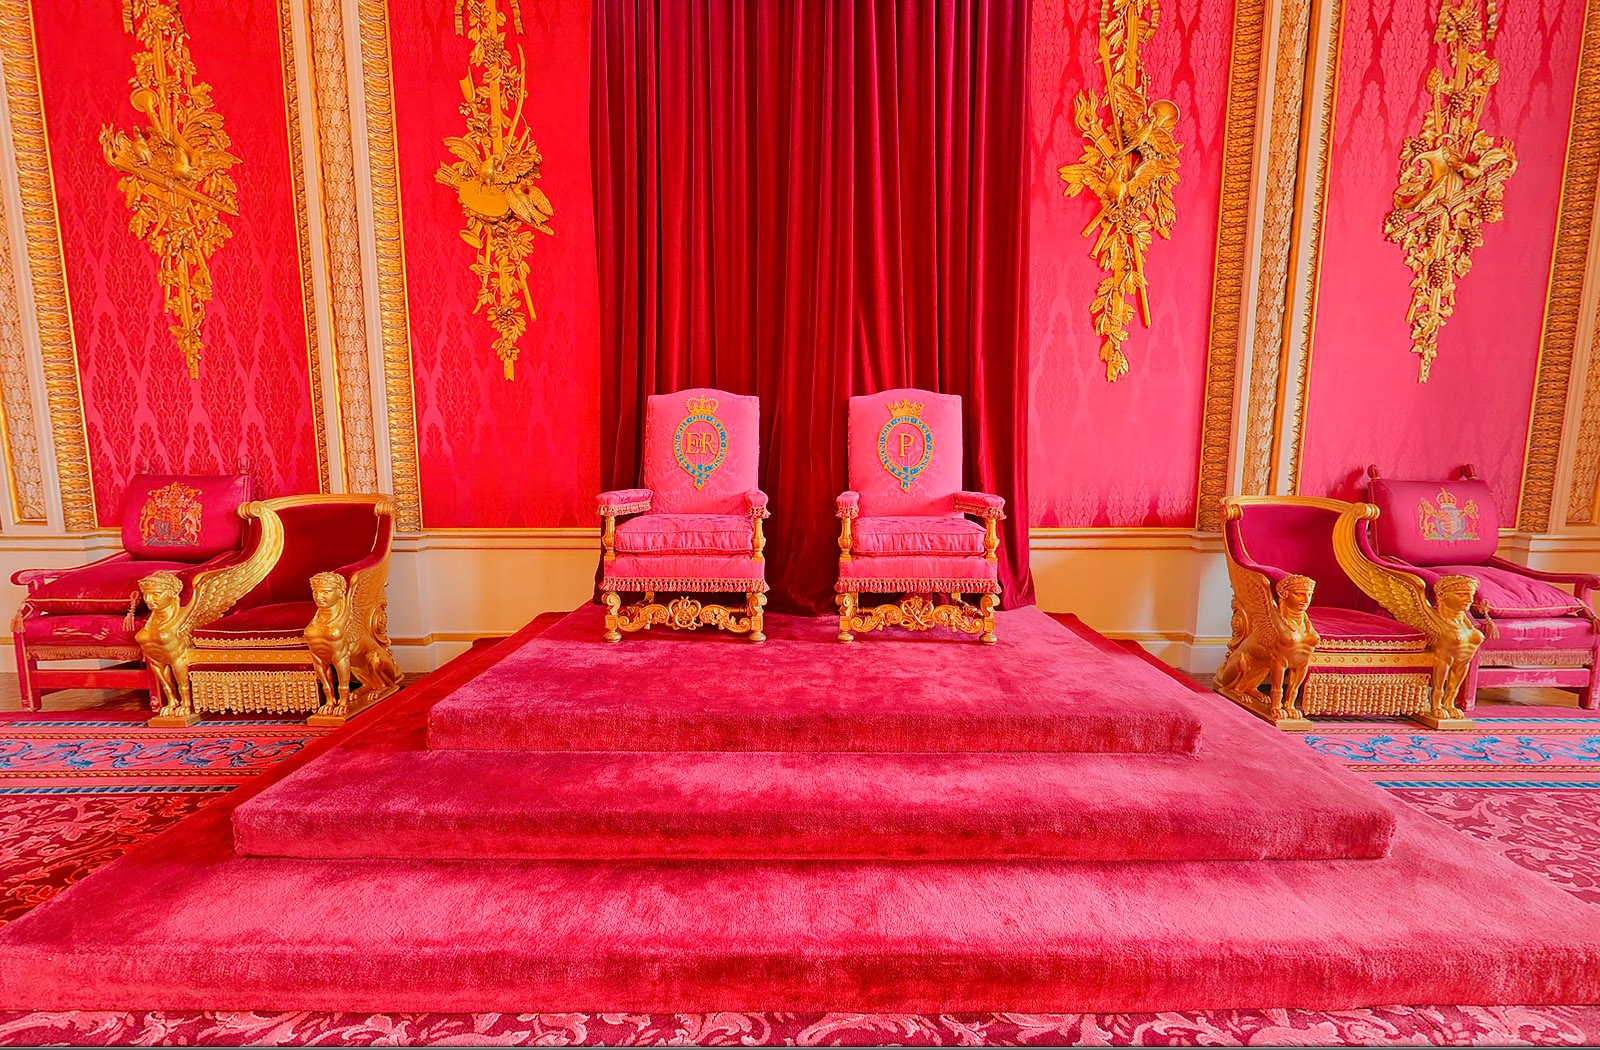 New Buckingham Palace Virtual Tours in celebration of the Royal Wedding